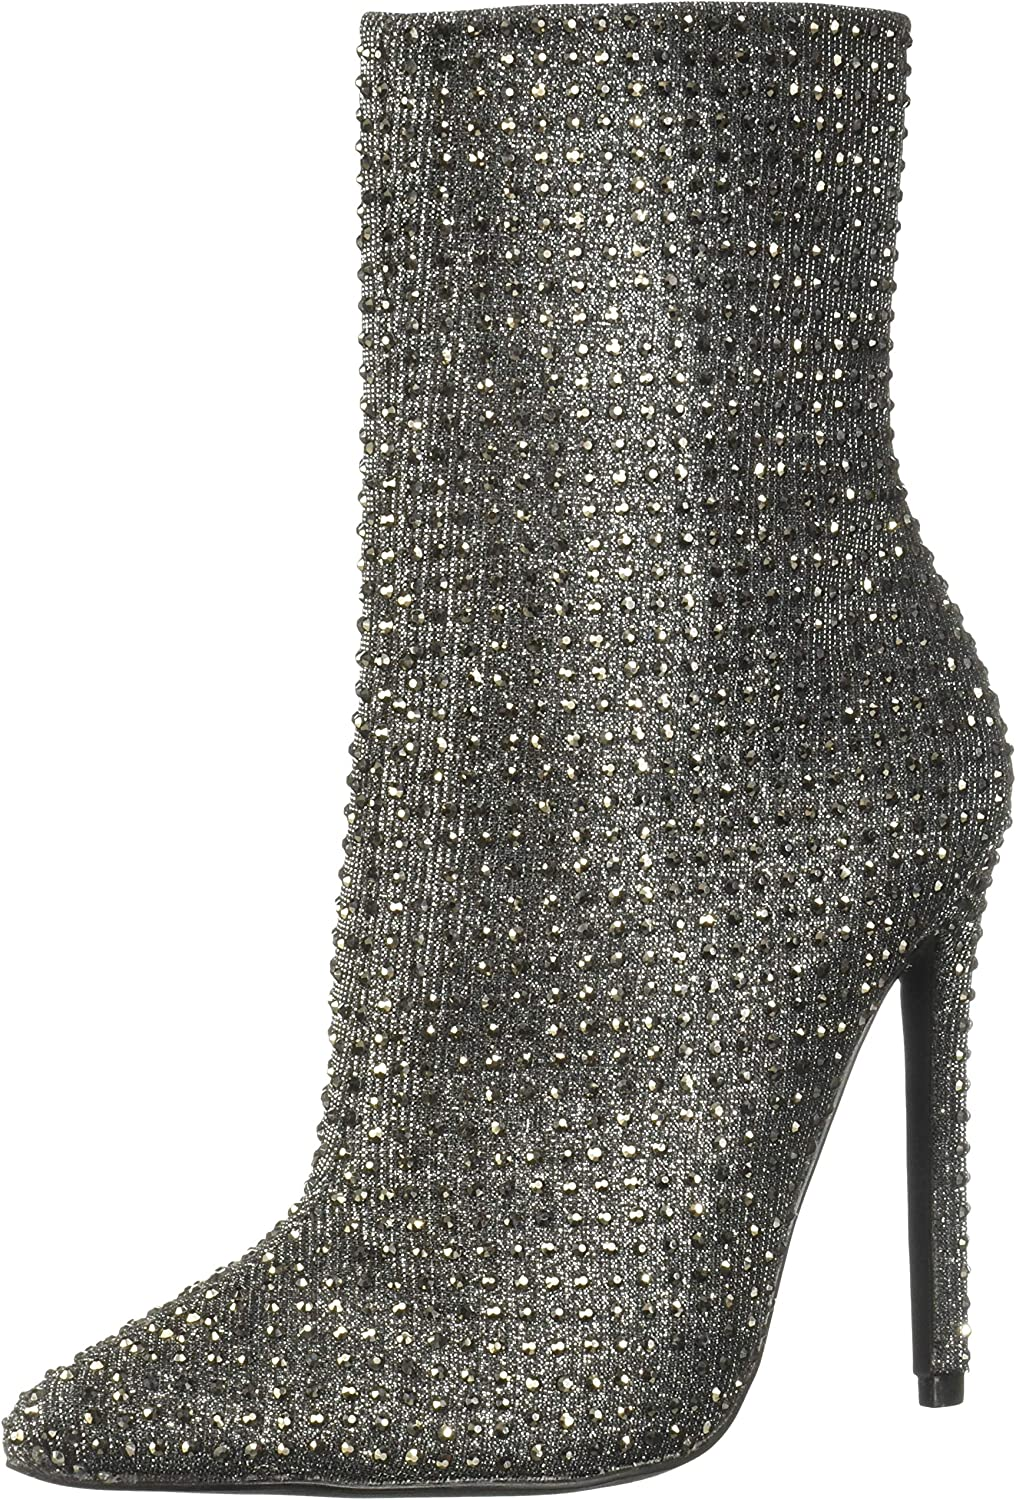 Steve Madden Womens Wifey Ankle Boot